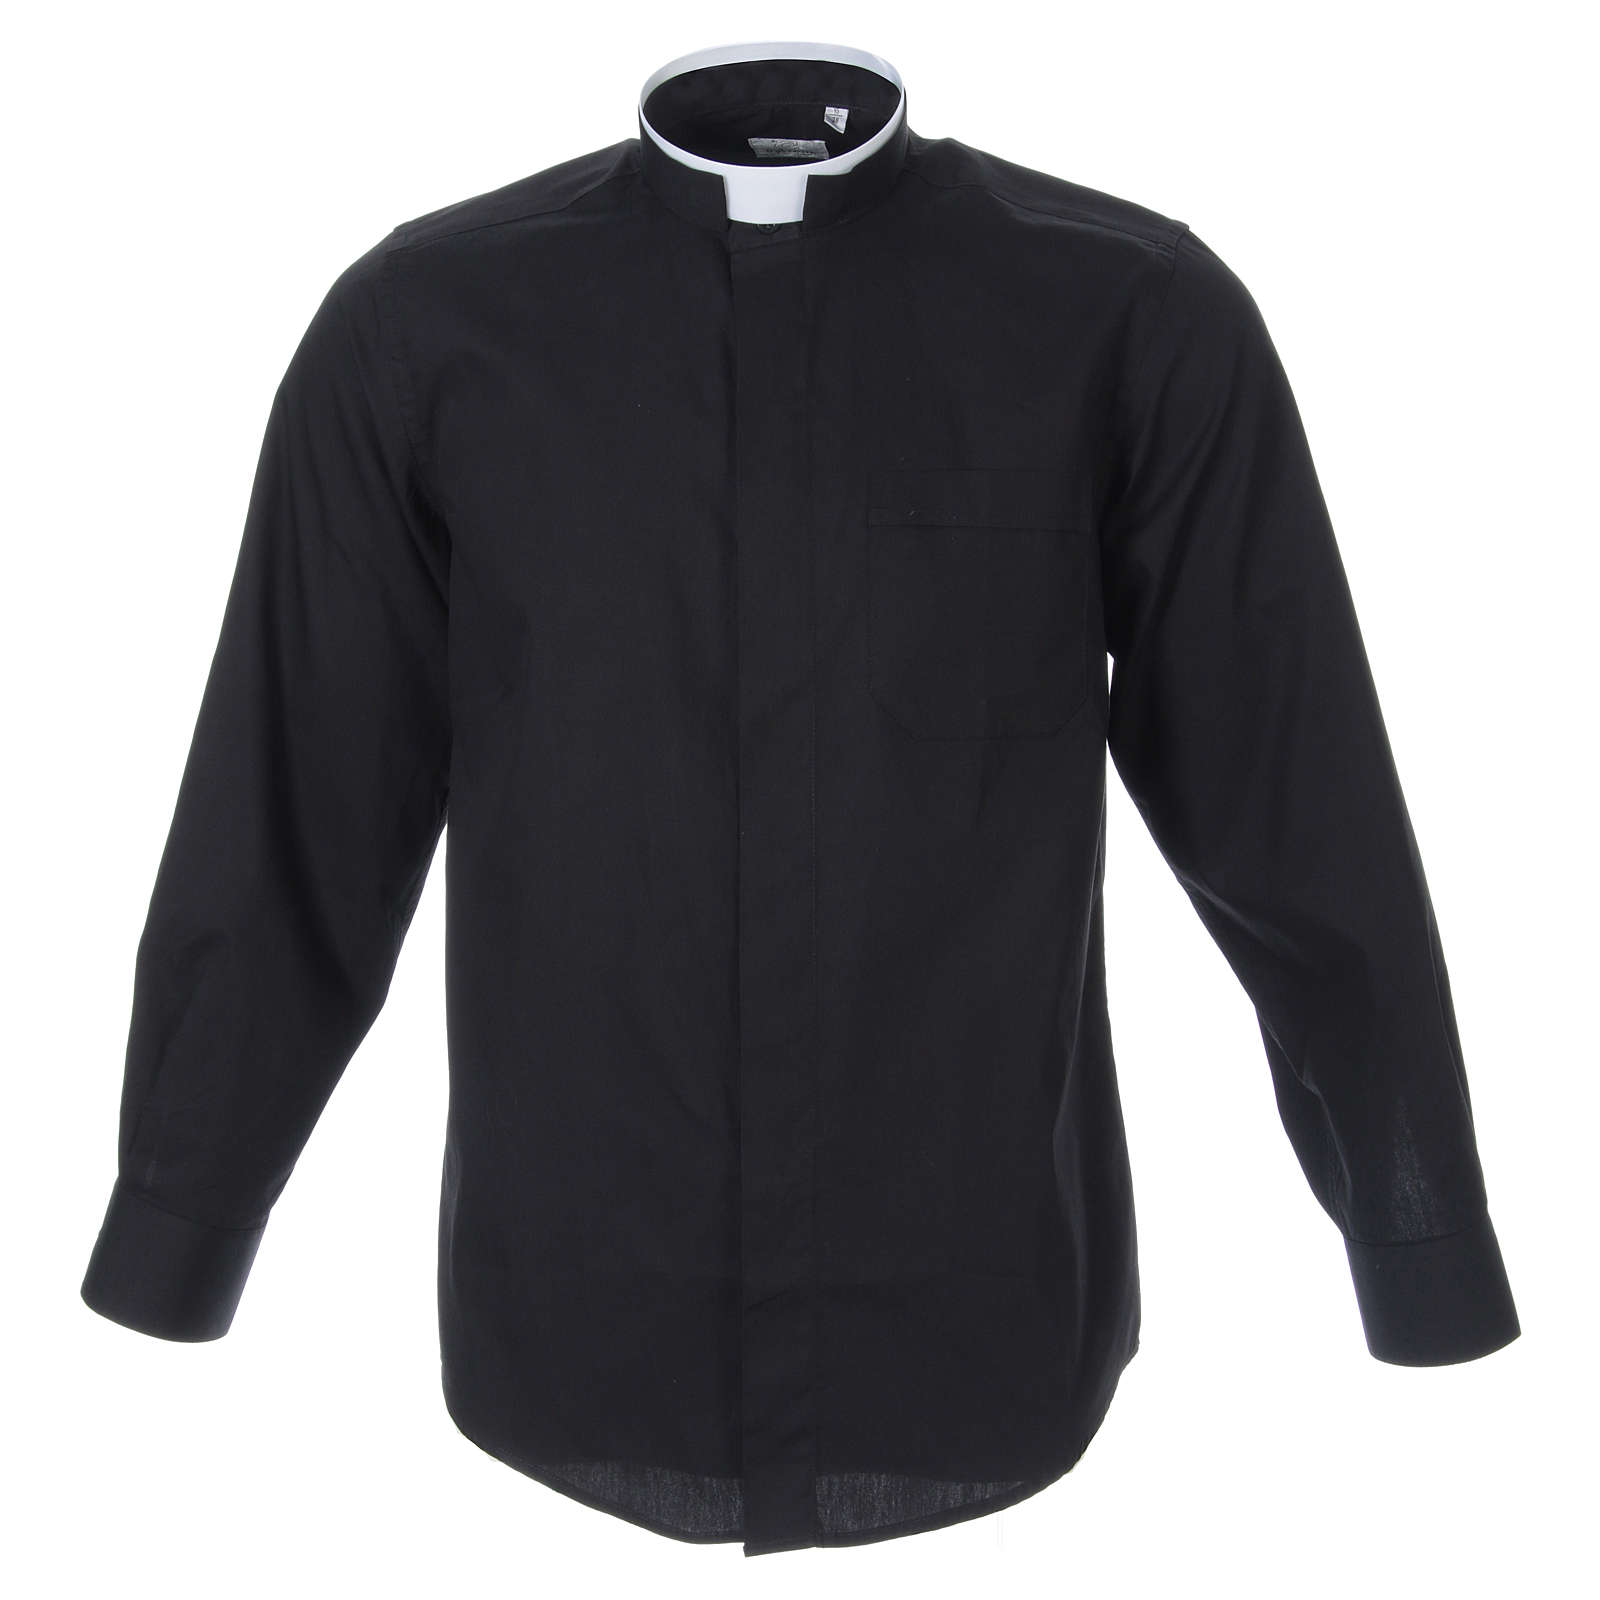 Clergyman Shirt with roman collar, black long sleeves, mixed cotton 4